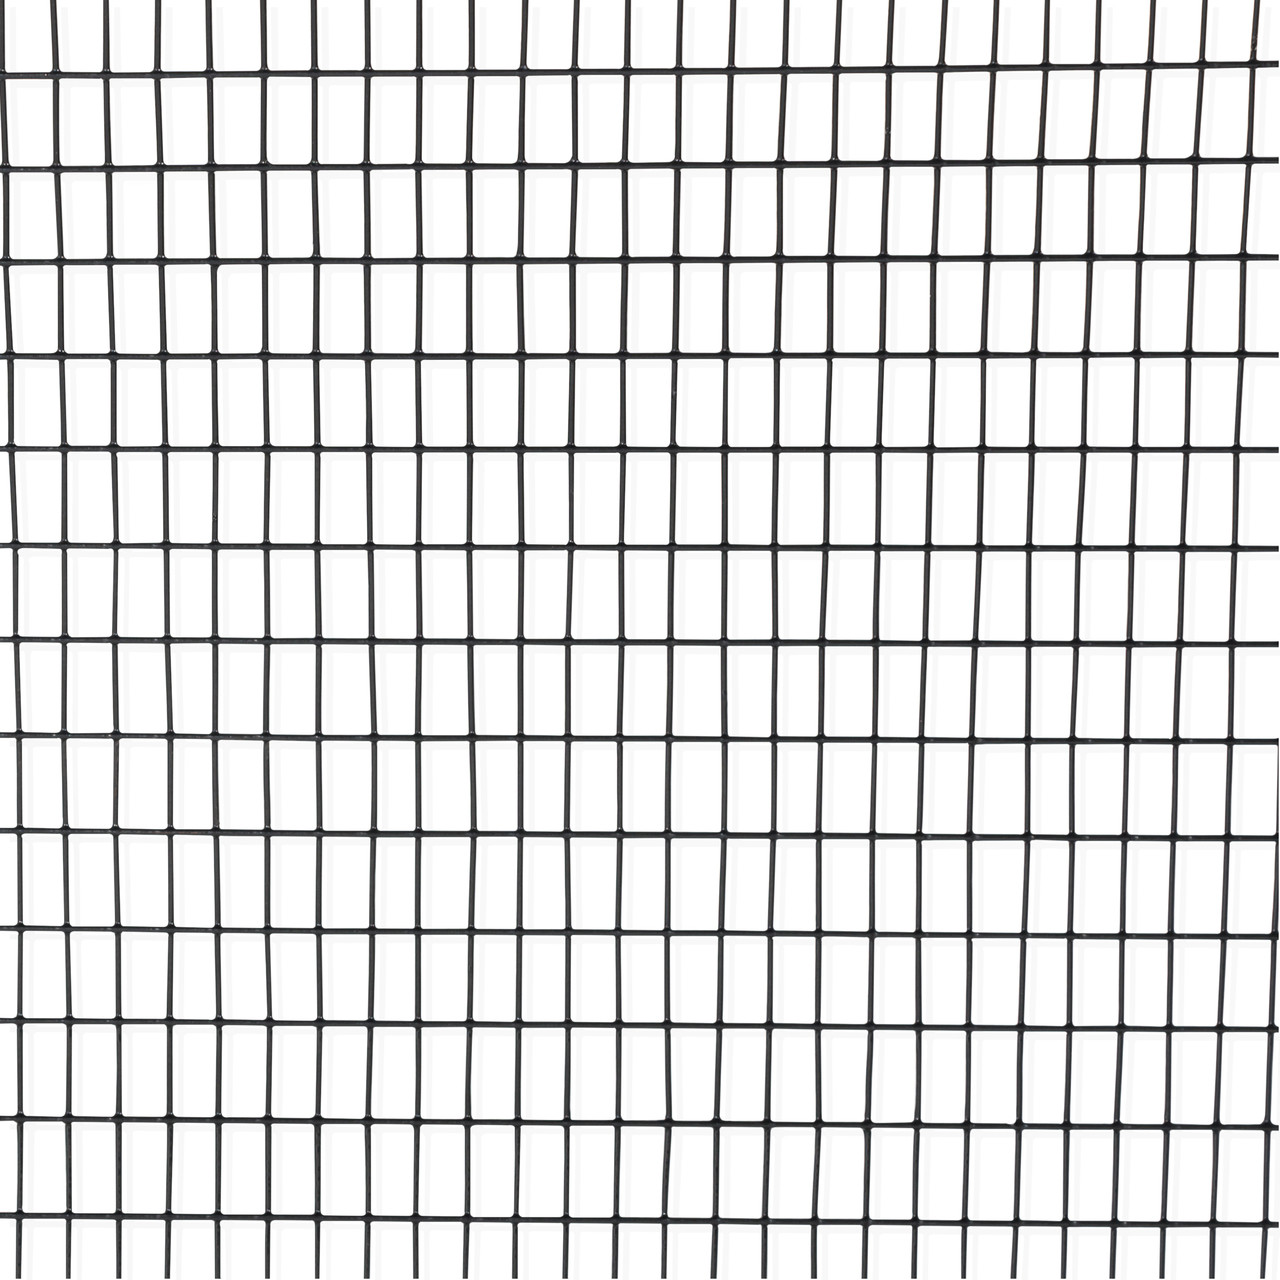 16 gauge black vinyl coated welded wire mesh size 05 inch by 1 inch 16 gauge black vinyl coated welded wire mesh size 05 inch by 1 inch keyboard keysfo Image collections